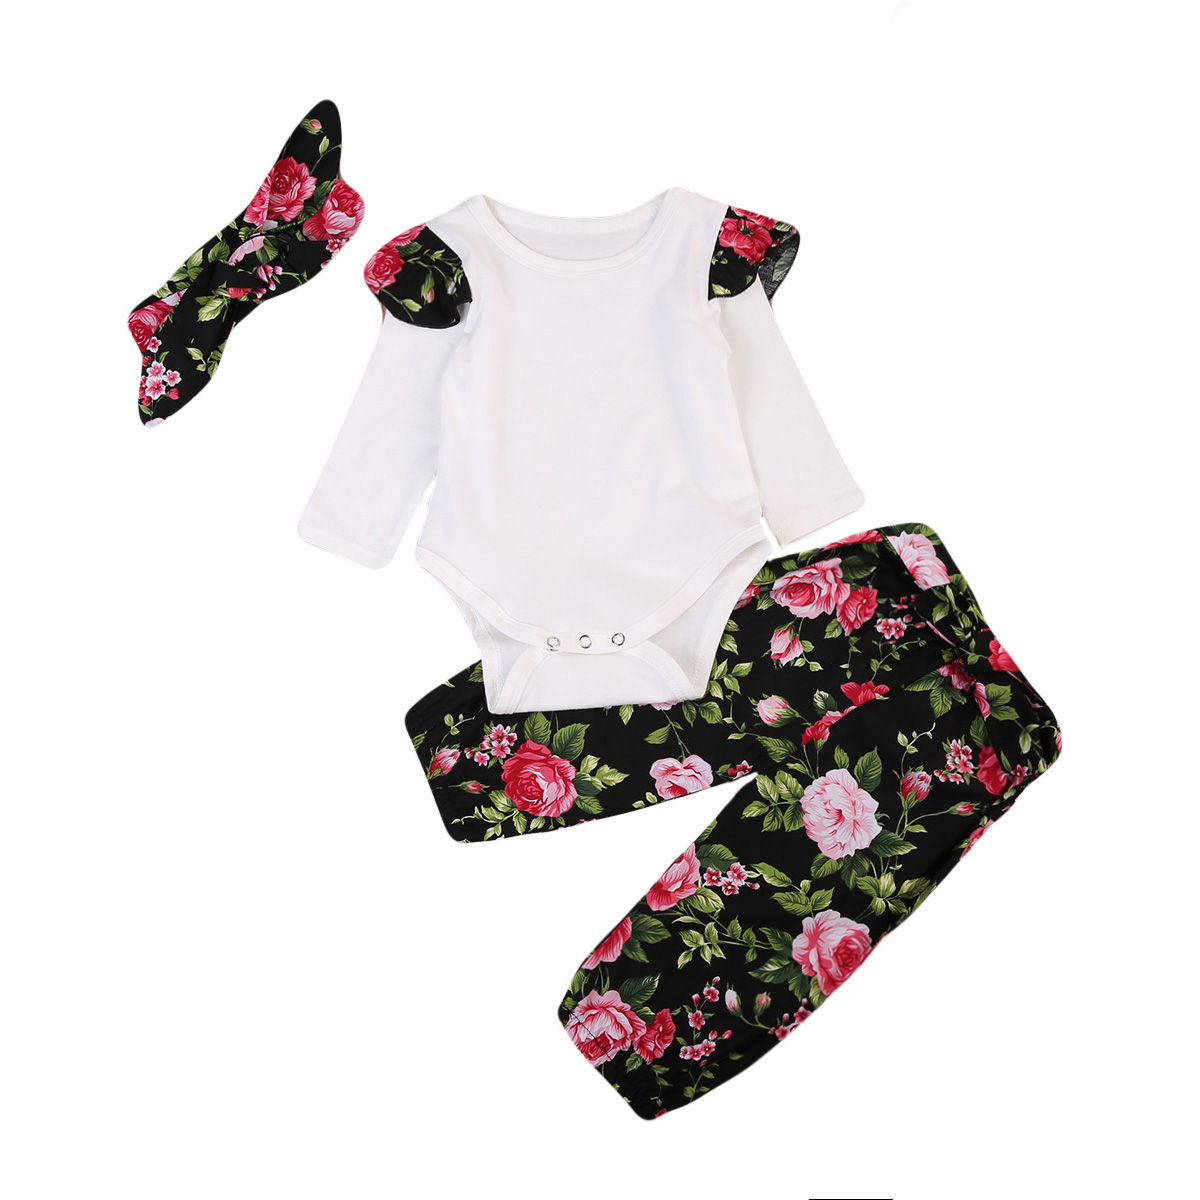 Pudcoco Adorable Newborn Baby Girl Tops Clothes Set Romper Floral Pants Headband 3pcs Casual Autumn Outfits Set Clothes 2017 floral newborn baby girl clothes ruffles romper baby bodysuit headband 2pcs outfits sunsuit children set